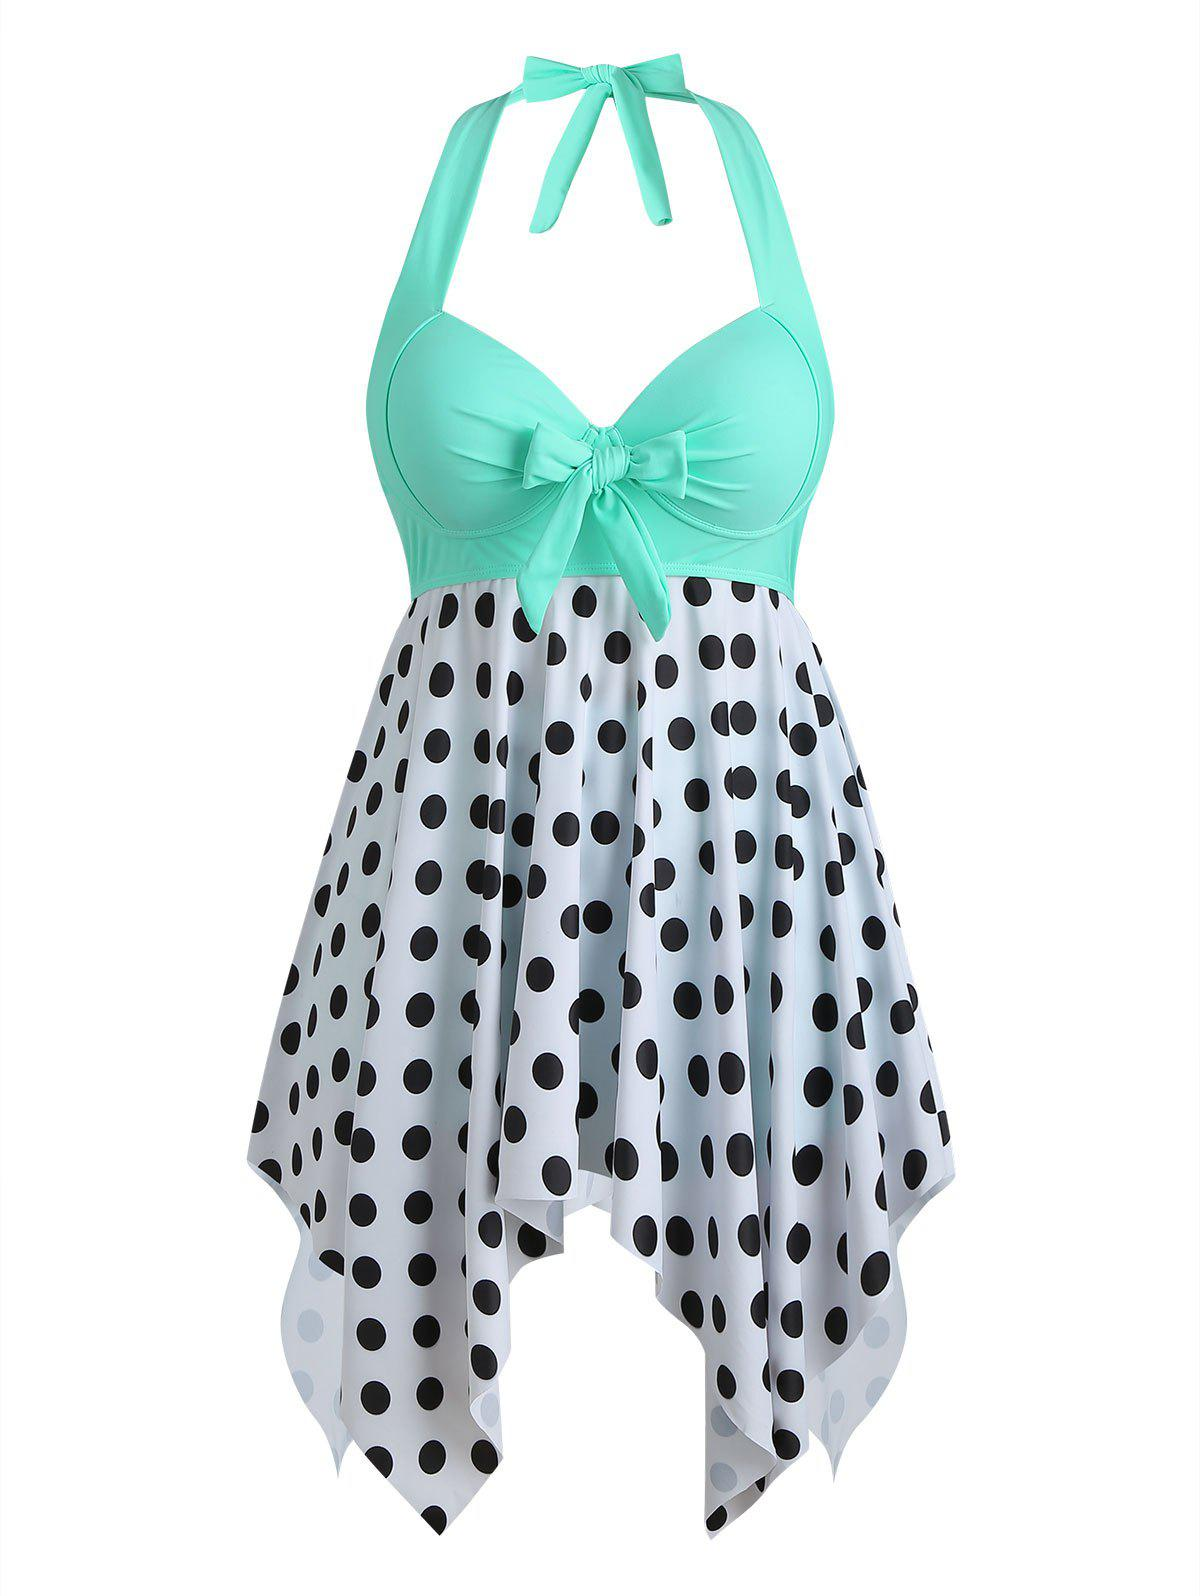 Palm Tree Flamingo Fishscale Polka Dot Bowknot Plus Size Tankini Set фото